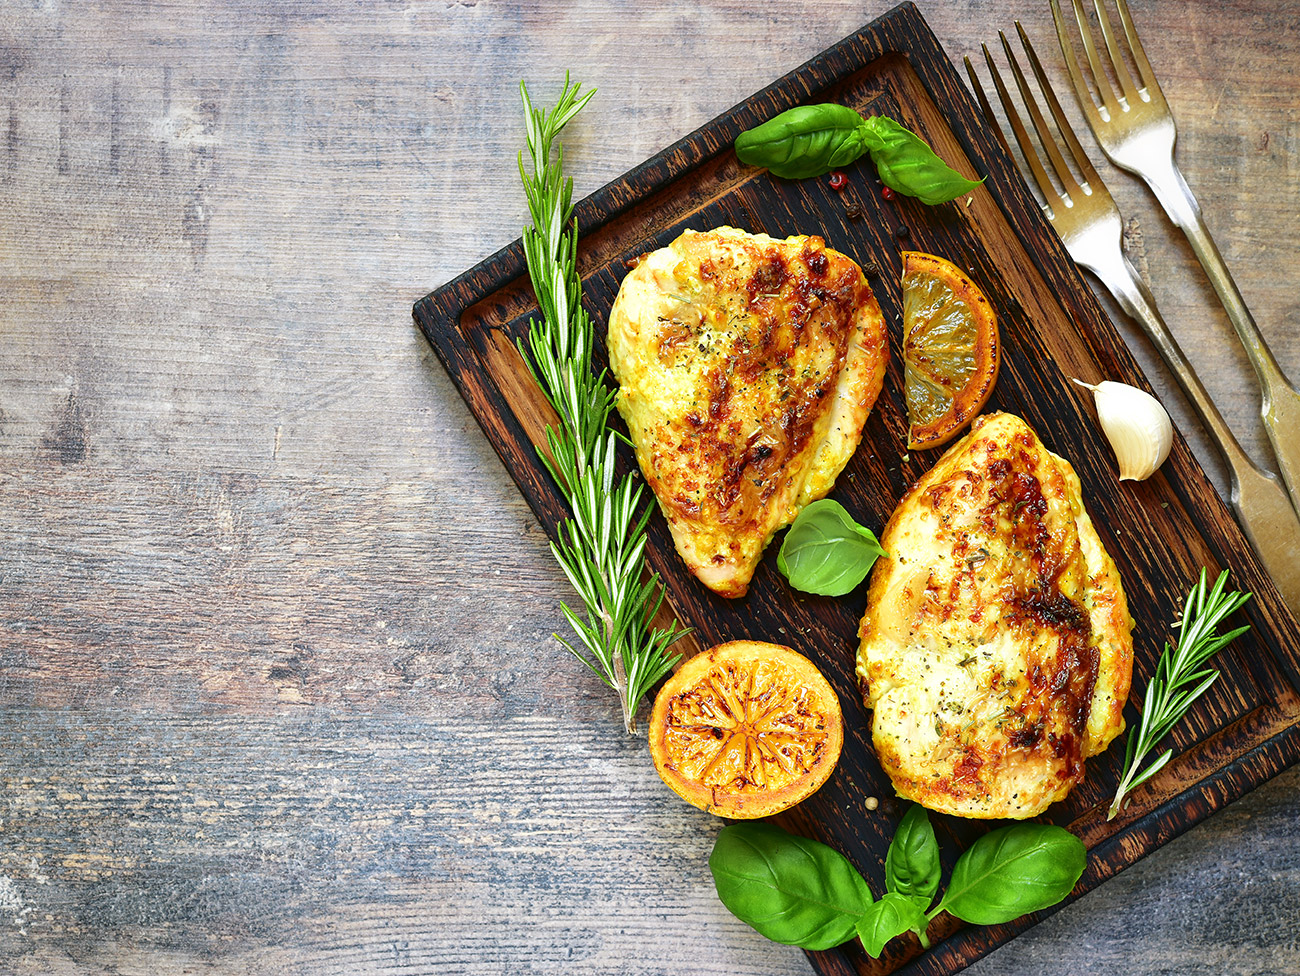 Two pieces of marinated chicken on wood board, with lemon slices and greens placed decoratively around chicken.